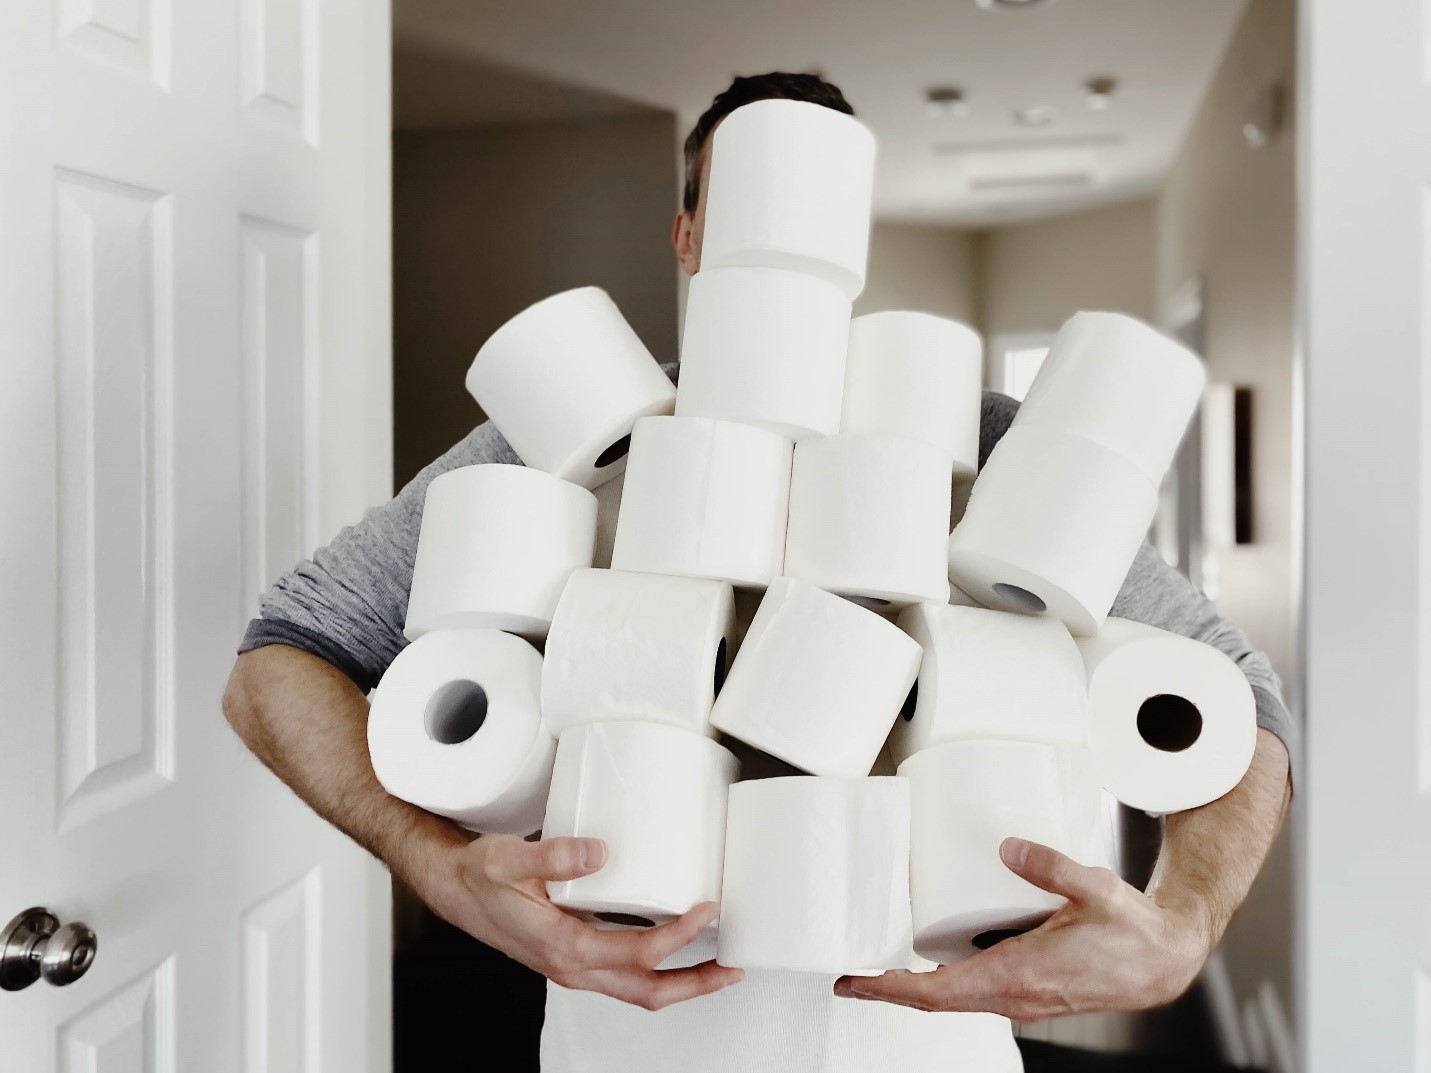 Why so hard to find toilet paper during the COVID-19 pandemic